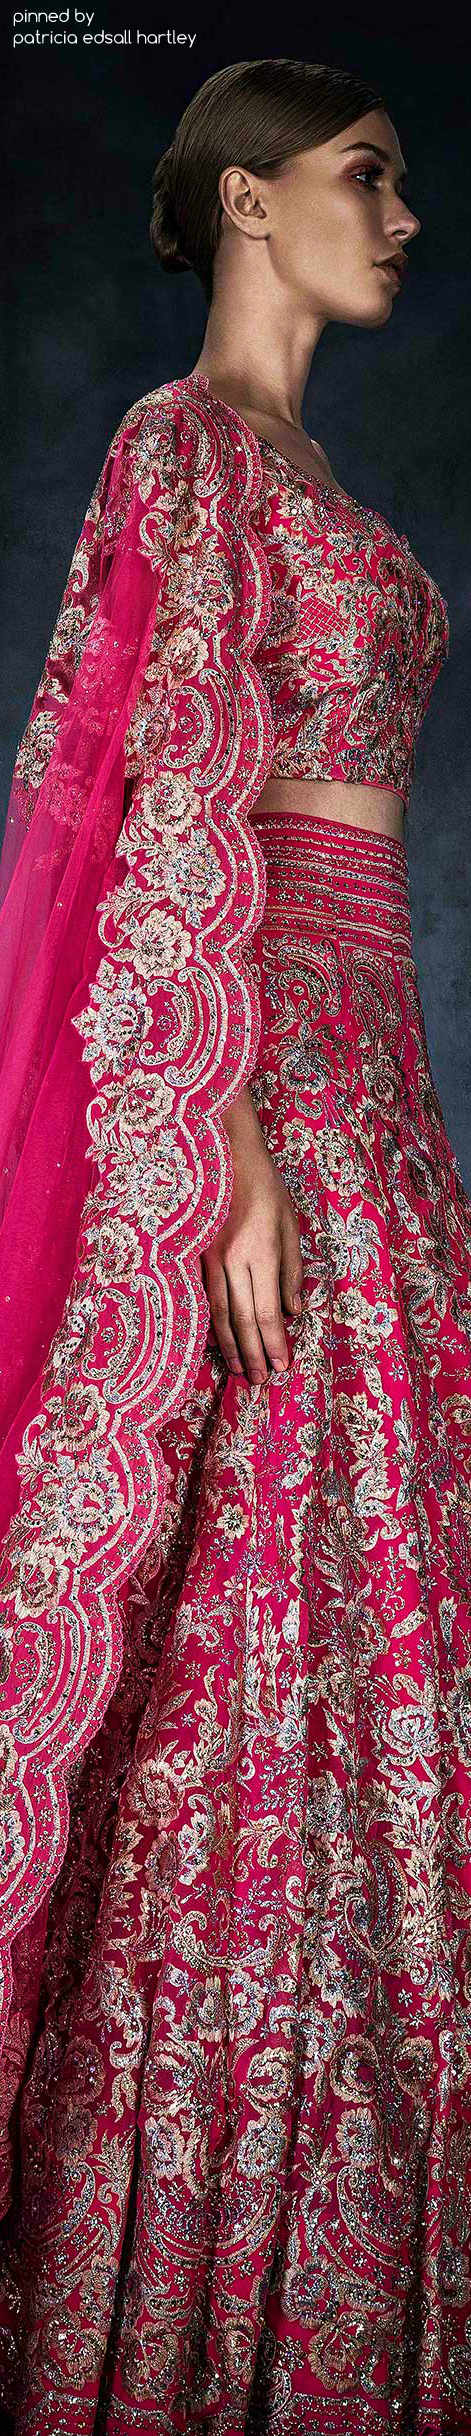 Sparkling Couture\' from South East Asia -Suneet-Varma | Dresses ...